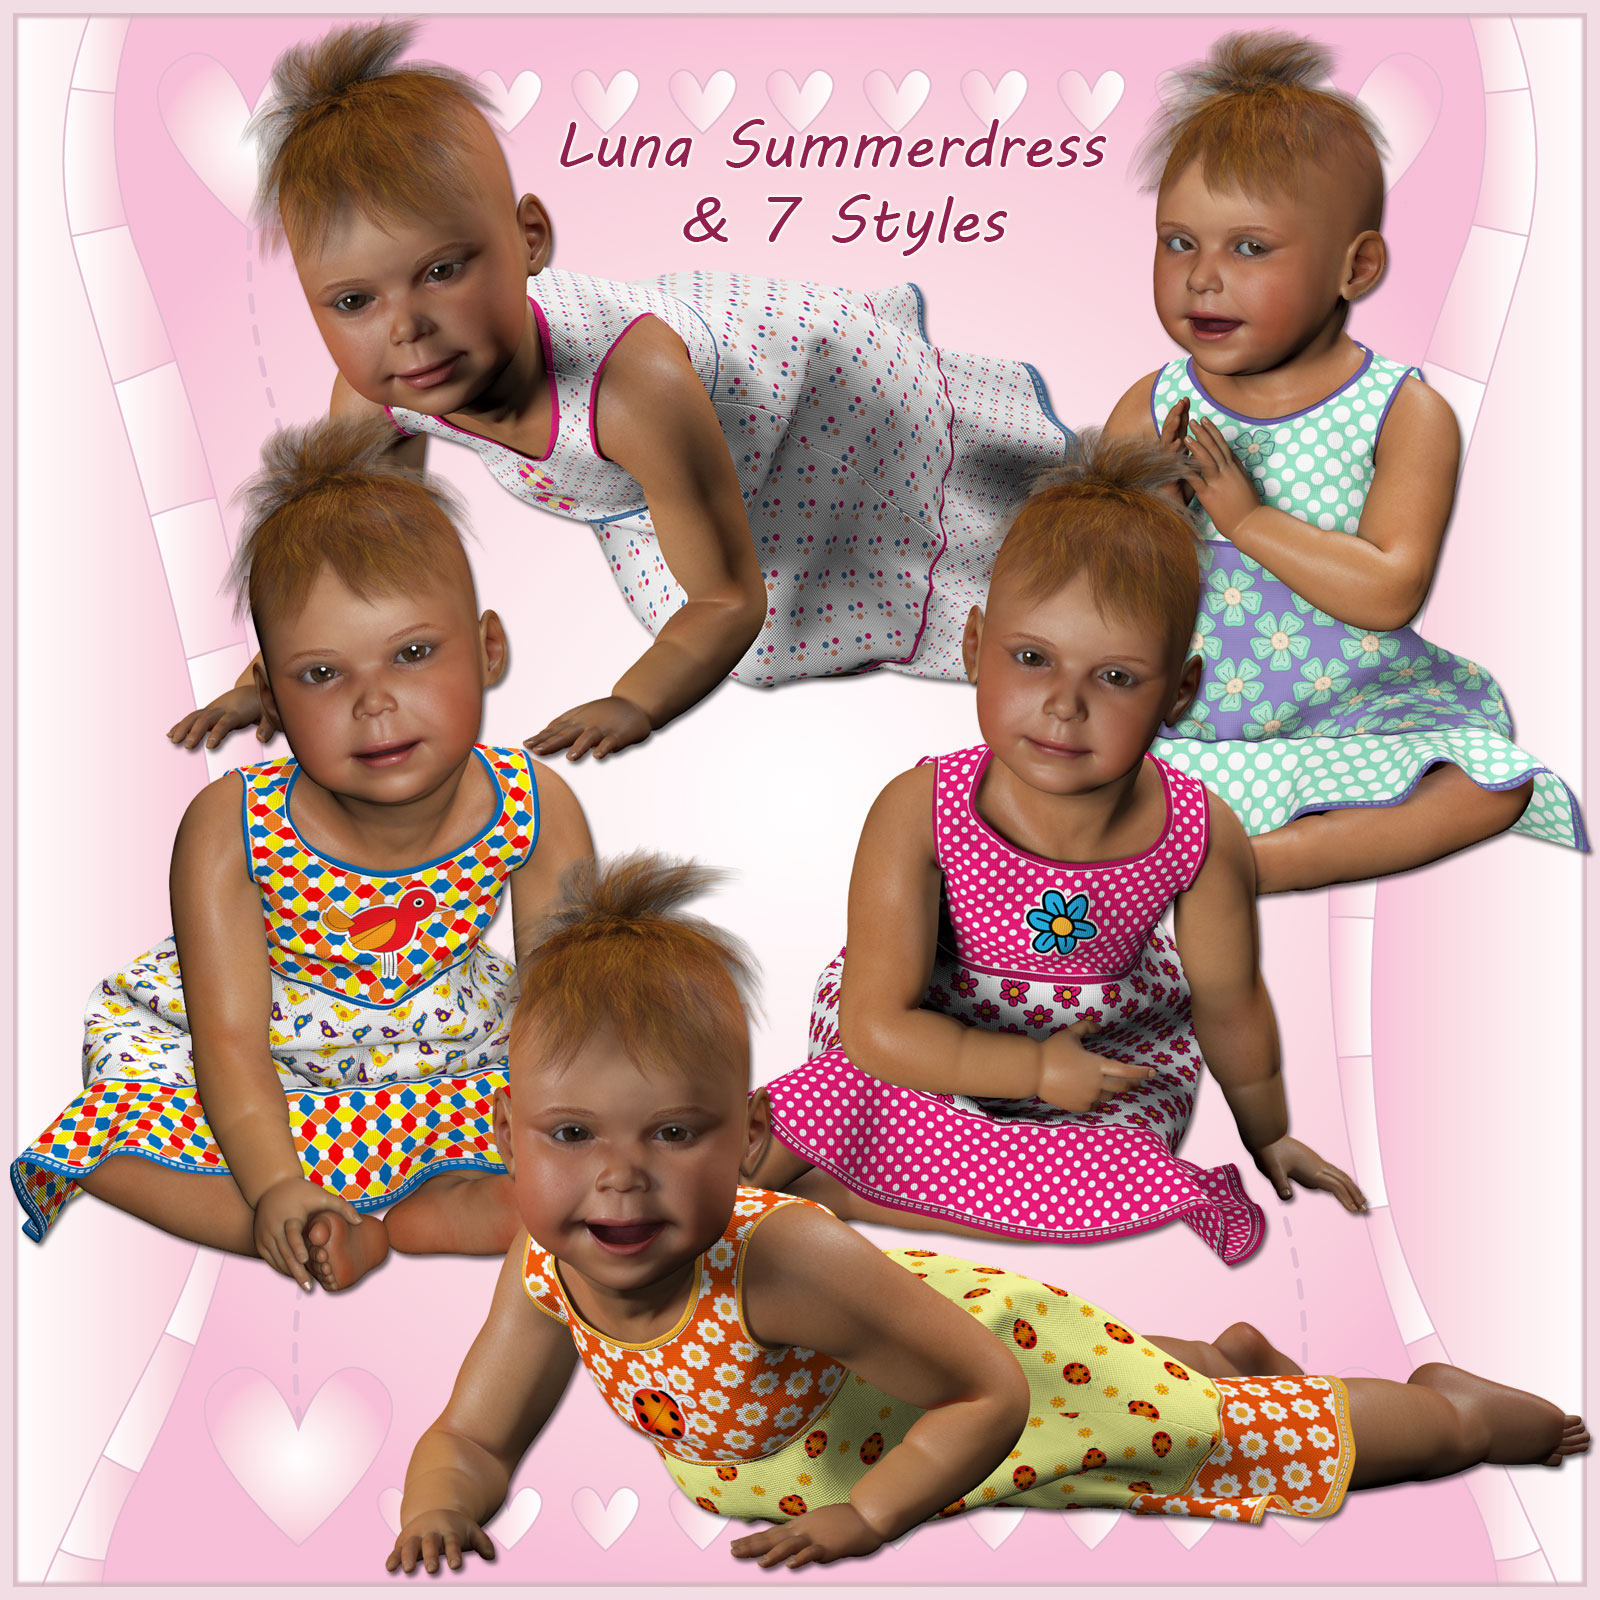 Luna Summerdress and 7 Styles